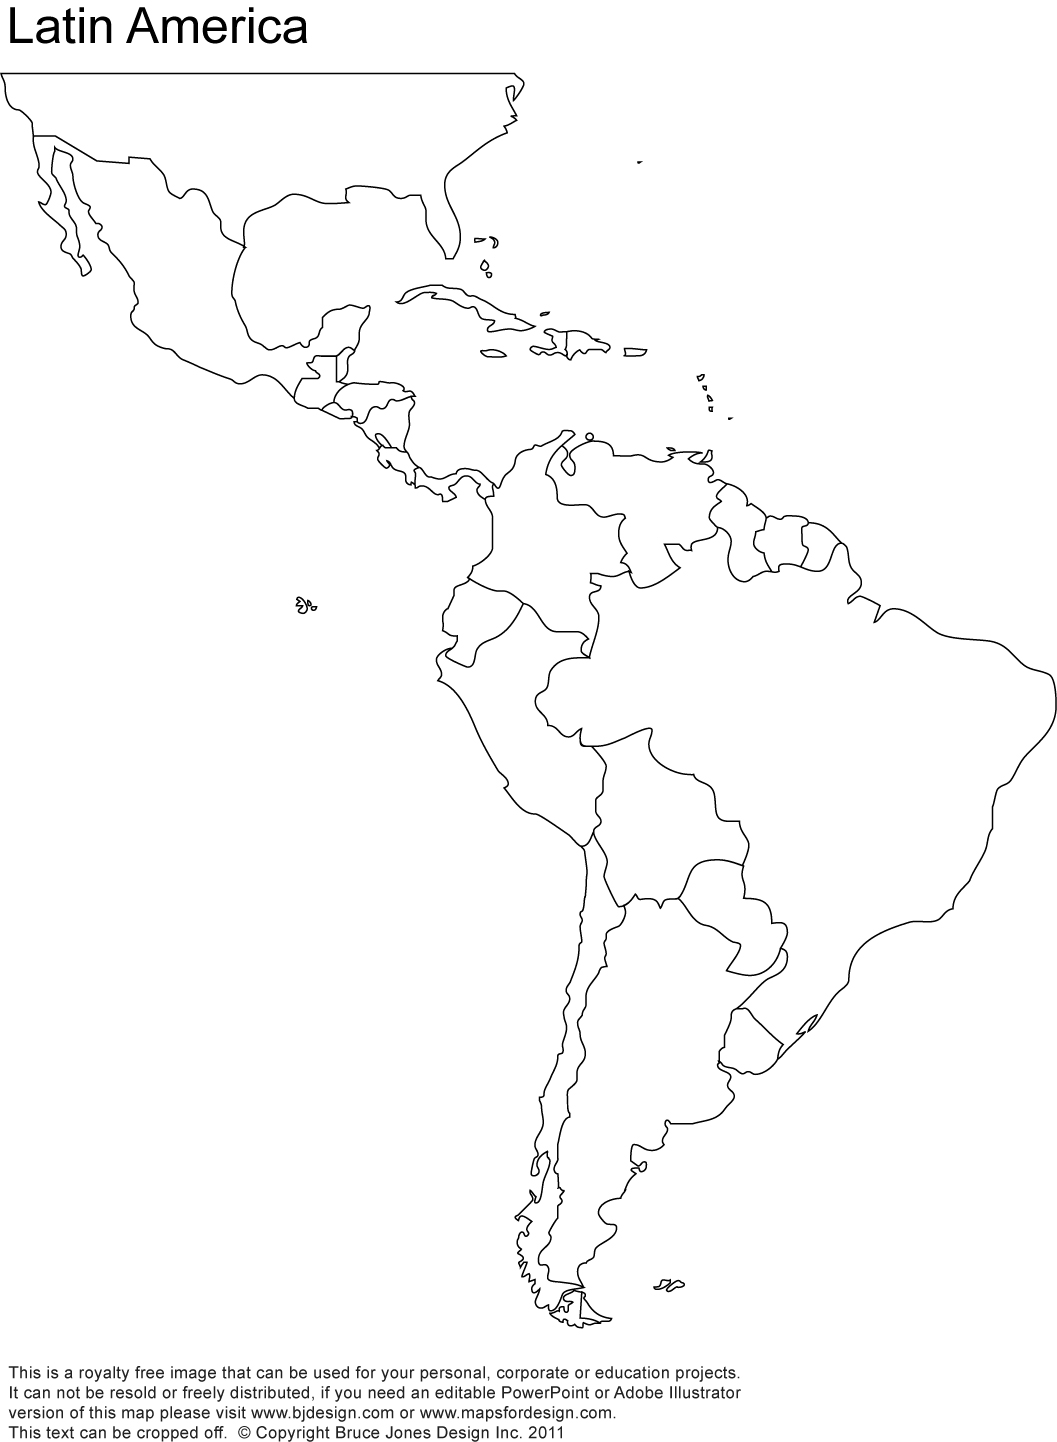 photograph regarding Printable South American Map called Global Community Printable, Blank Maps Royalty Cost-free, jpg